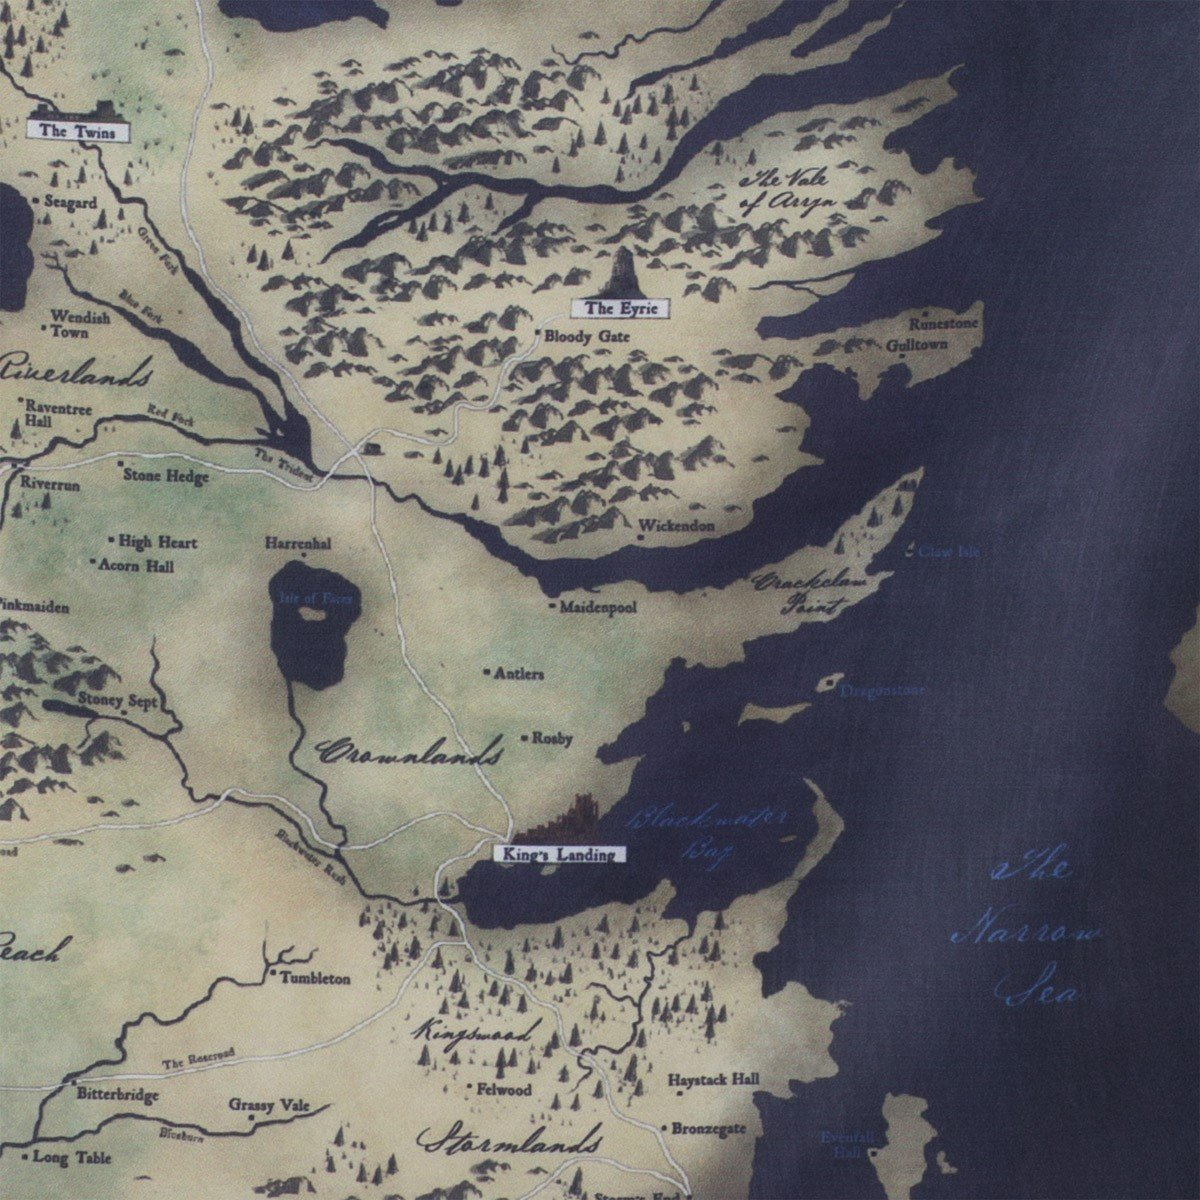 Game of Thrones Map of Westeros Banner Game Of Throne Map on clash of kings map, walking dead map, winterfell map, the kingsroad, camelot map, game of thrones - season 1, got map, works based on a song of ice and fire, winter is coming, a clash of kings, dallas map, lord snow, the pointy end, bloodline map, fire and blood, star trek map, world map, a game of thrones: genesis, spooksville map, guild wars 2 map, a game of thrones, jericho map, justified map, valyria map, tales of dunk and egg, narnia map, gendry map, qarth map, a golden crown, themes in a song of ice and fire, the prince of winterfell, sons of anarchy, jersey shore map, a storm of swords, a storm of swords map, a game of thrones collectible card game, downton abbey map, game of thrones - season 2,